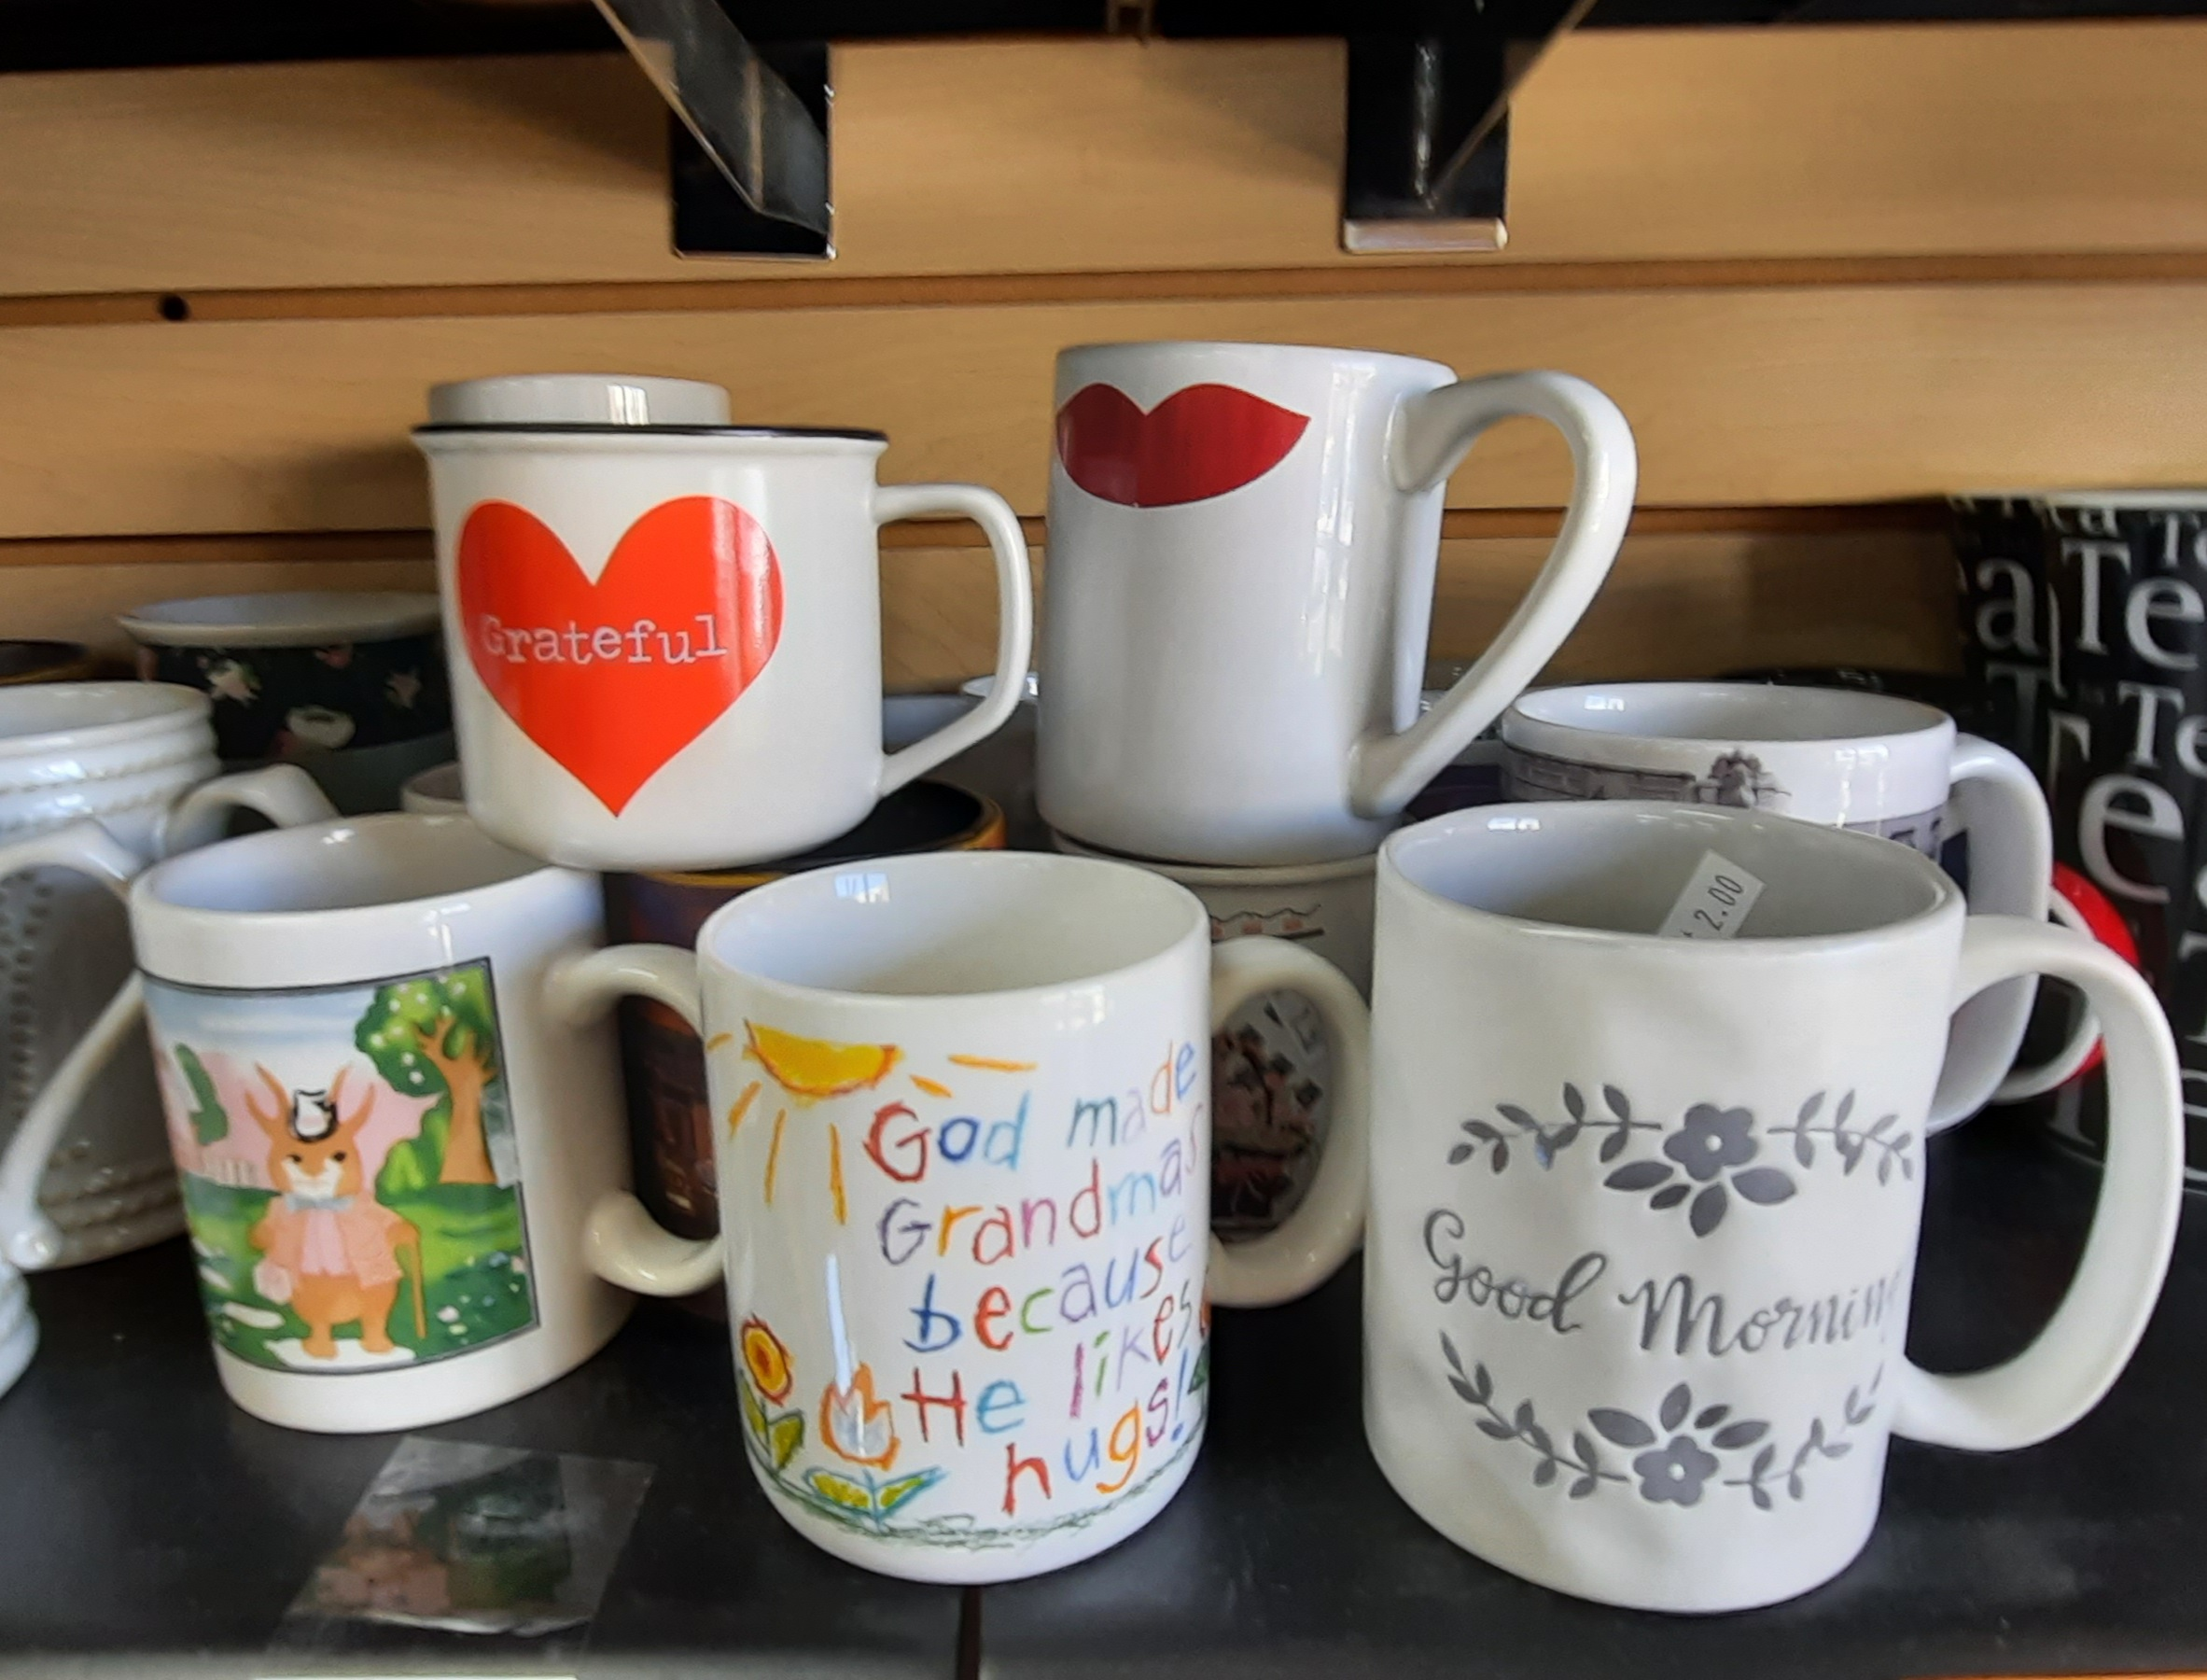 Cups and Mugs 1/2 Price June 14th-27th